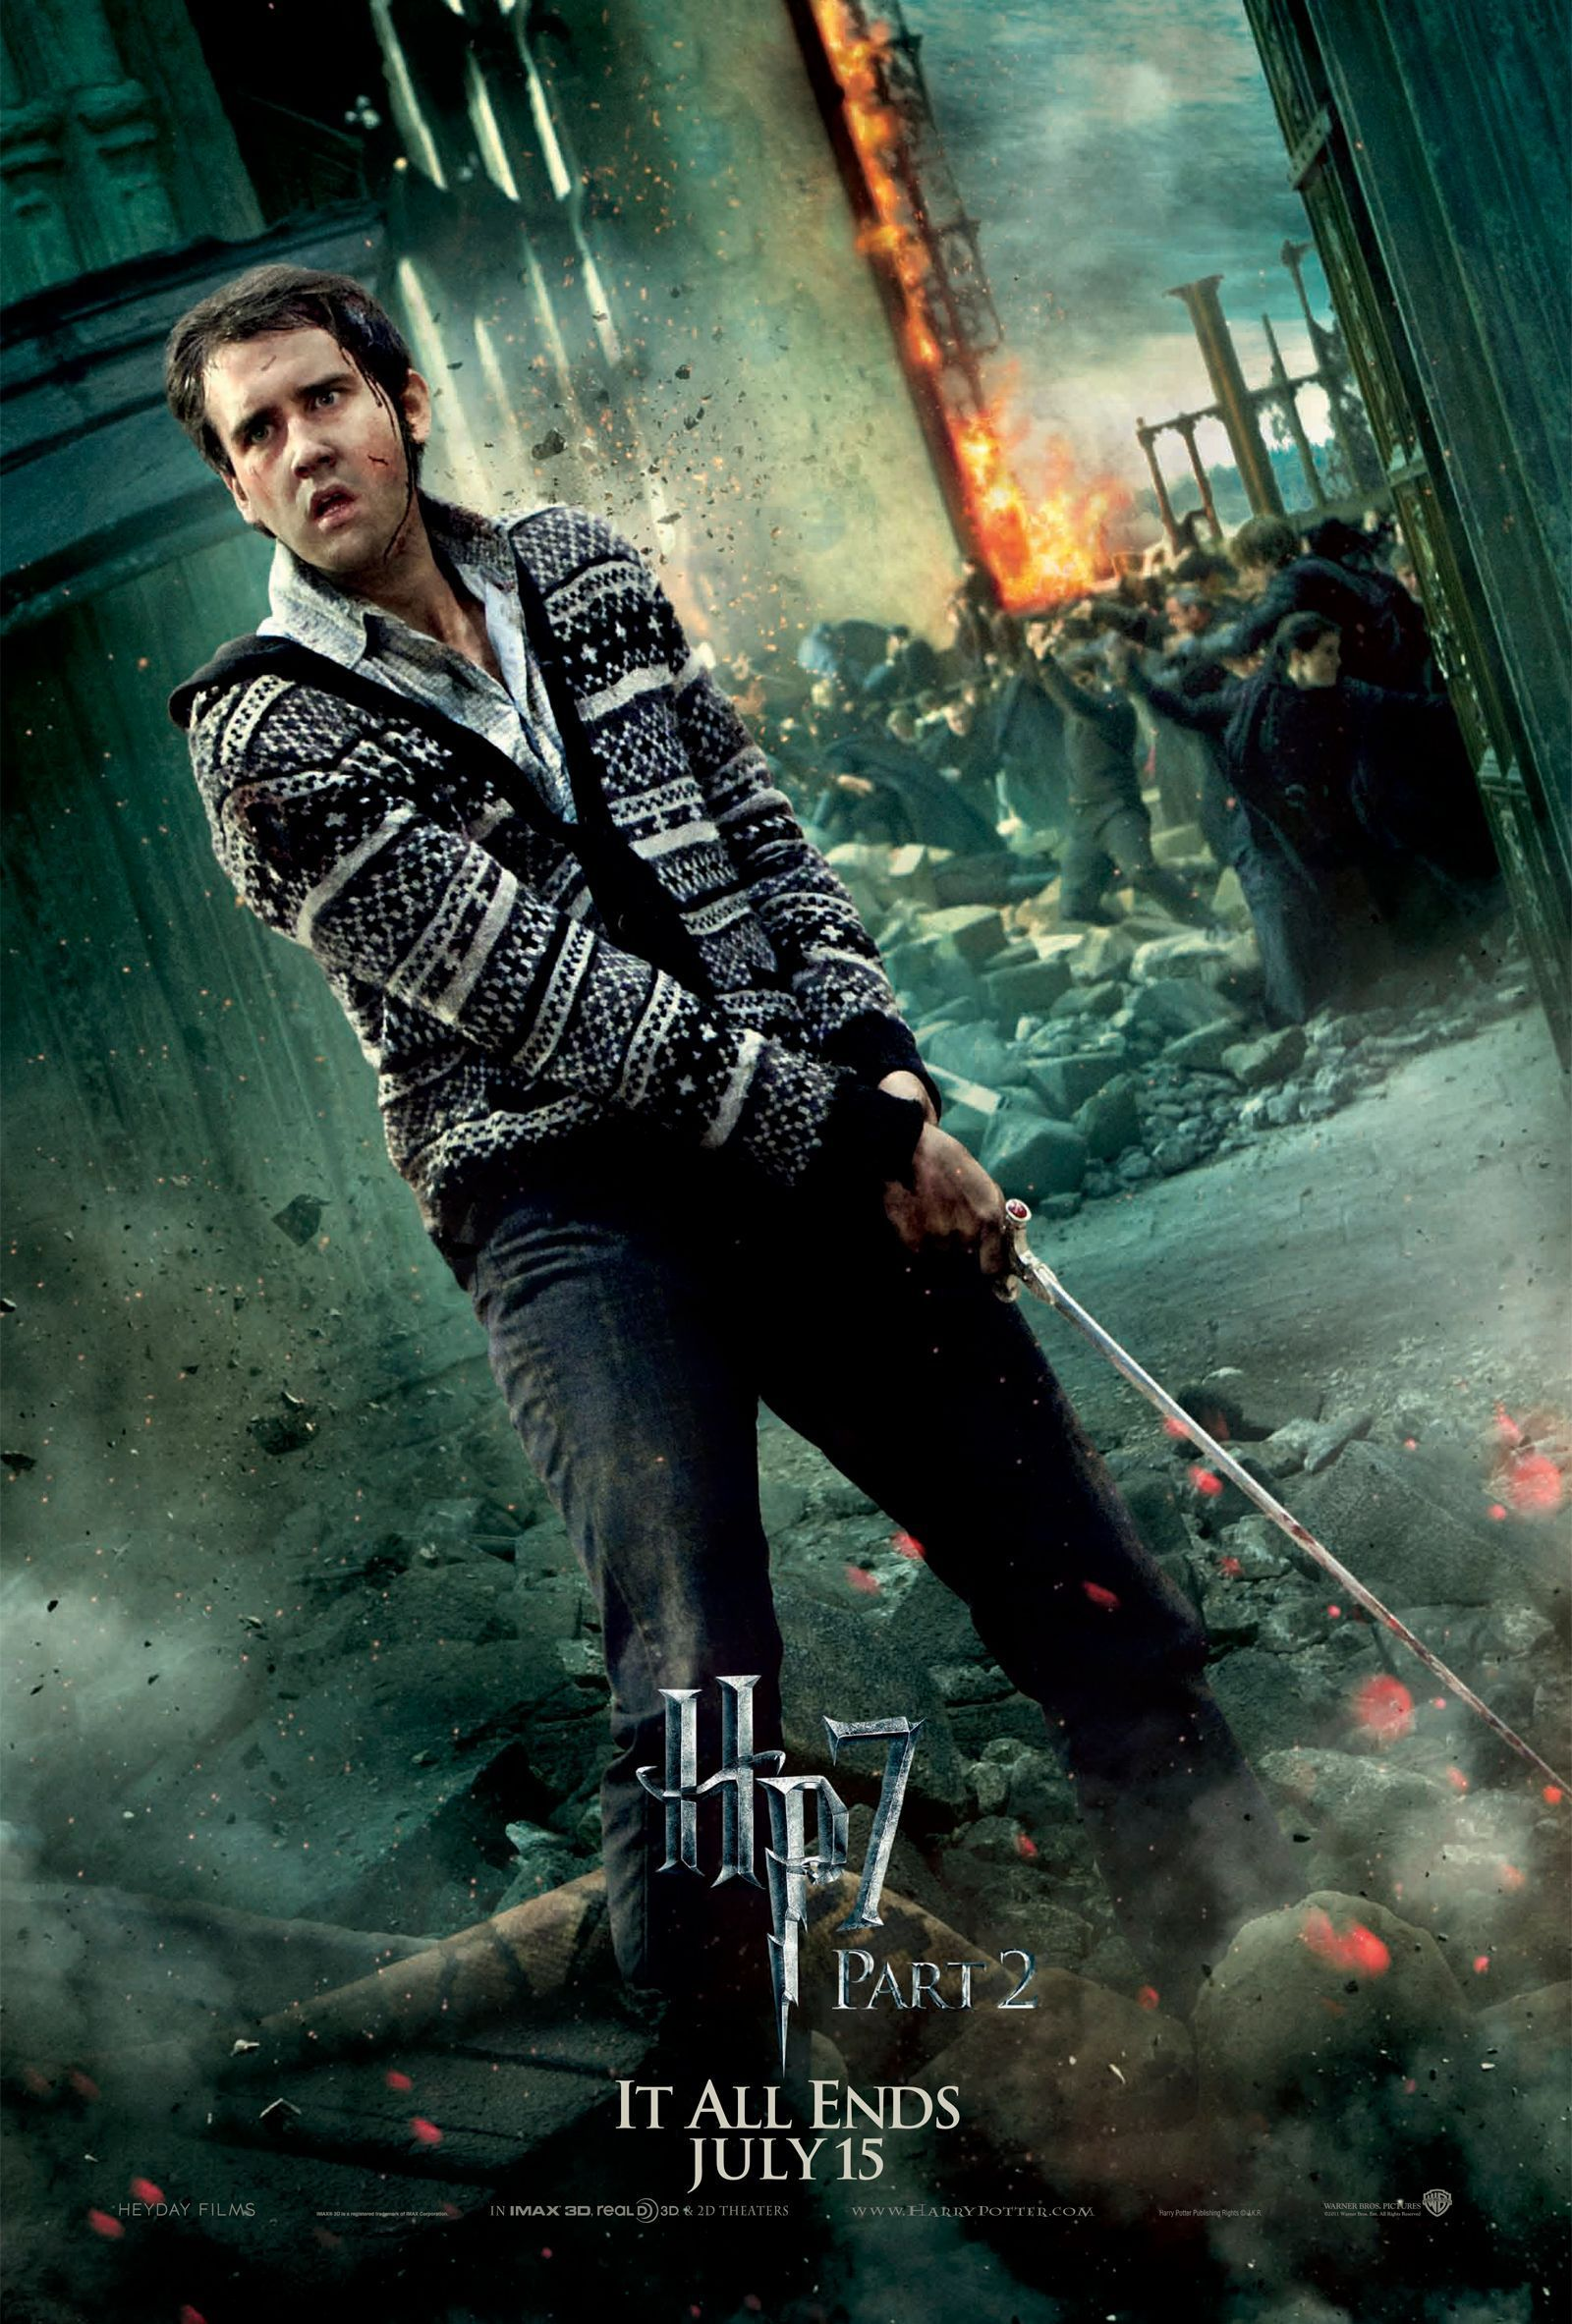 Deathly Hallows Part 2 Action Poster:  Neville Longbottom [HQ]